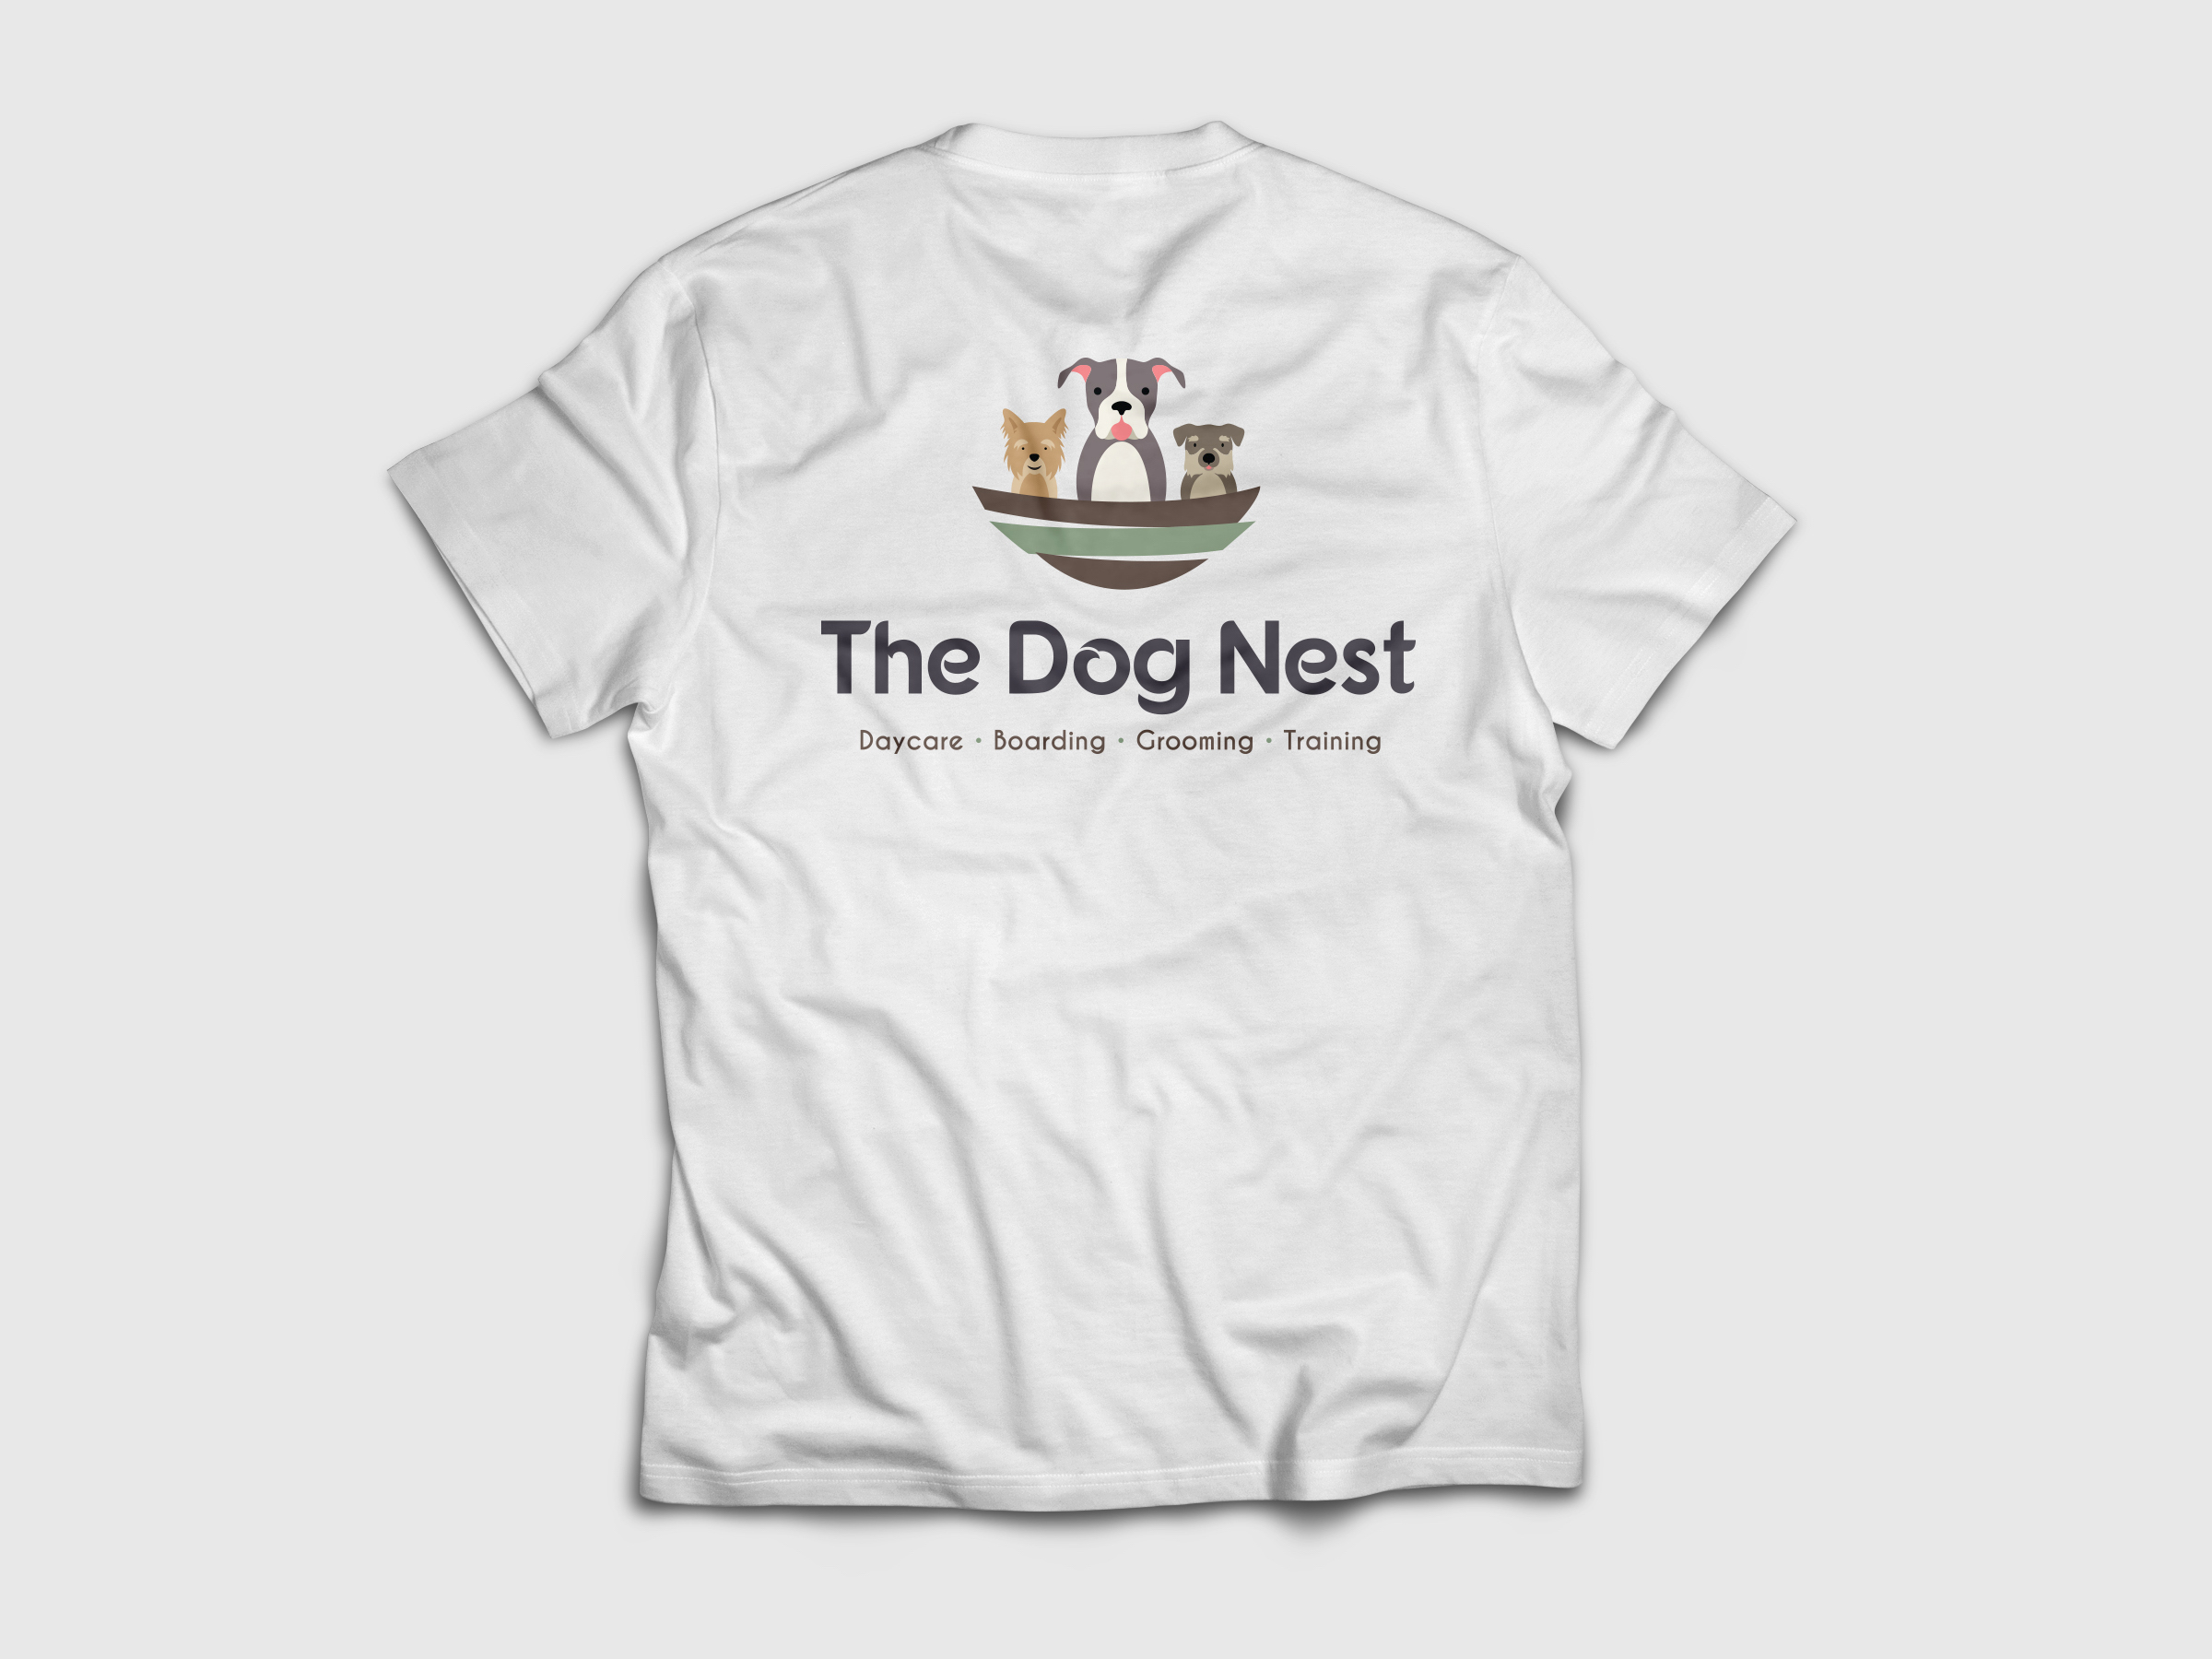 Golden-Antler-Graphic-Design-Milwaukee-Web-Branding-Marketing-Wisconsin-The-Dog-Nest-Logo-Apparel